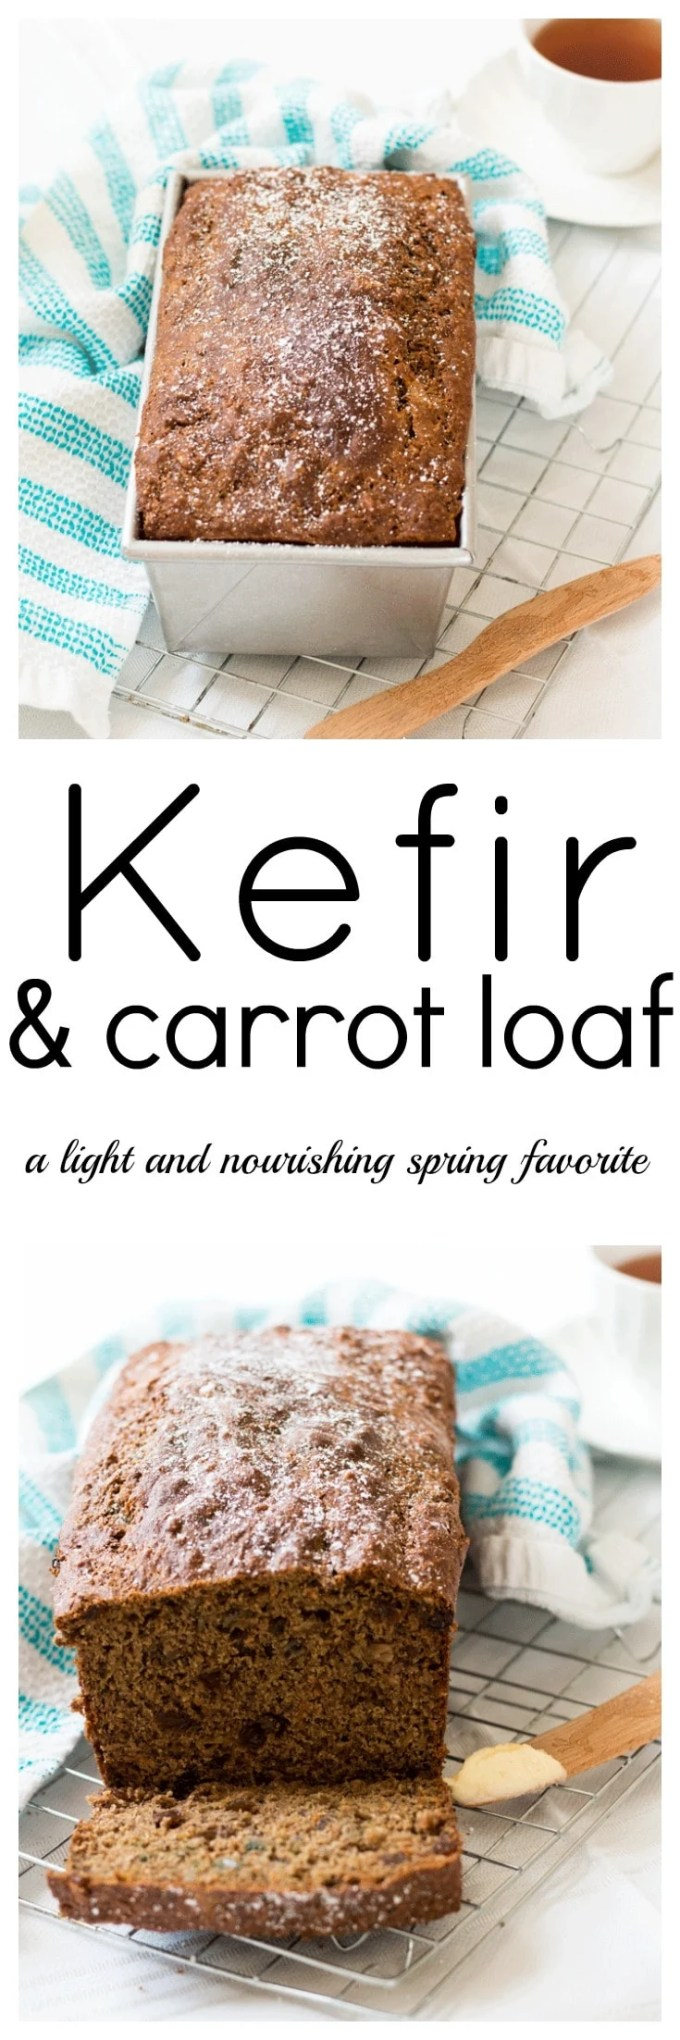 Imagine a Carrot Loaf that's not only delicious, but highly nourishing as well. Well, you can eat it too with this Kefir and Carrot Loaf full of goodness.